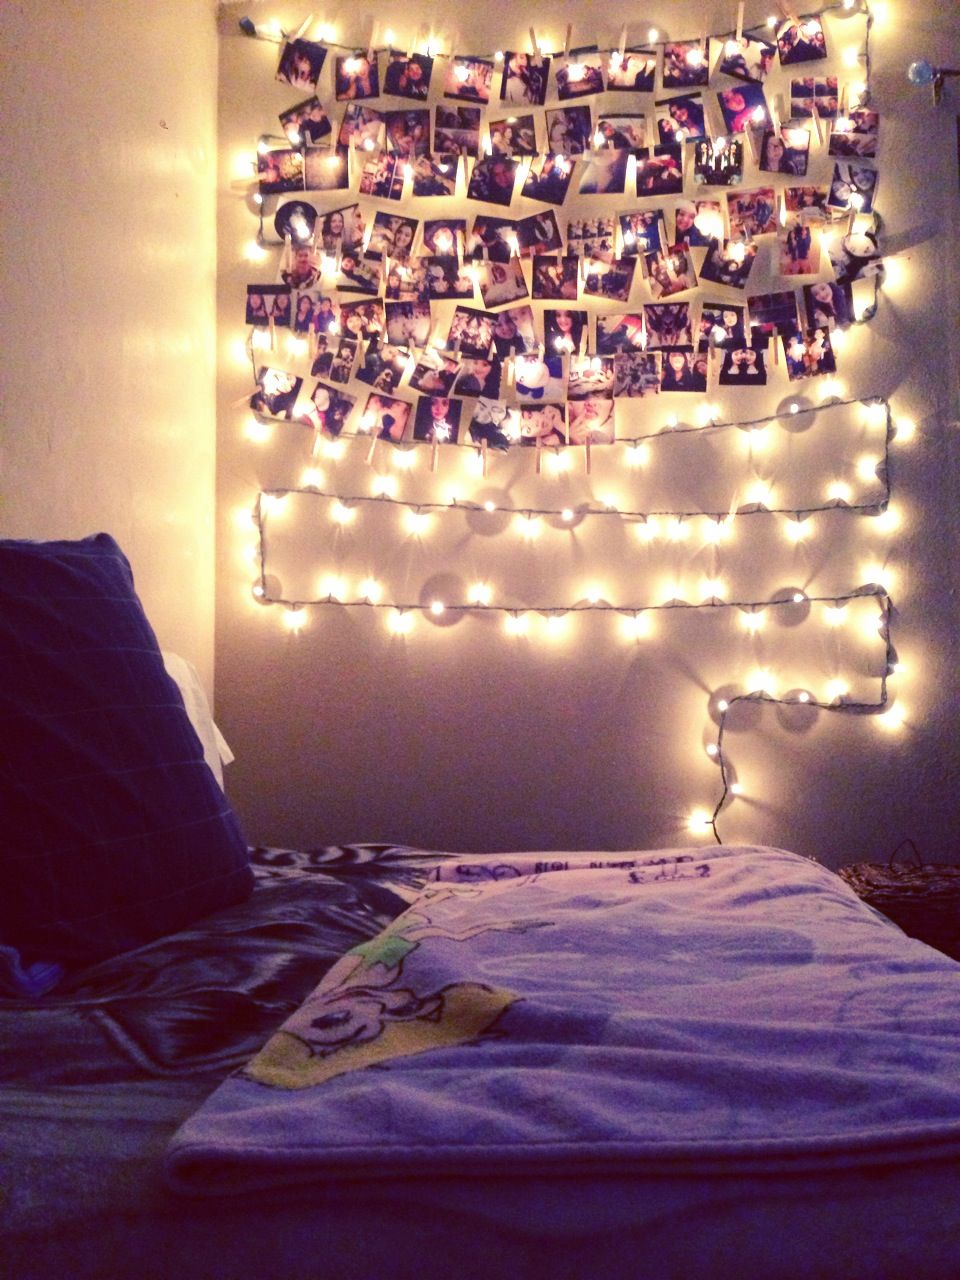 My wall in my room christmas lights photographs and clothespins my wall in my room christmas lights photographs and clothespins aloadofball Choice Image